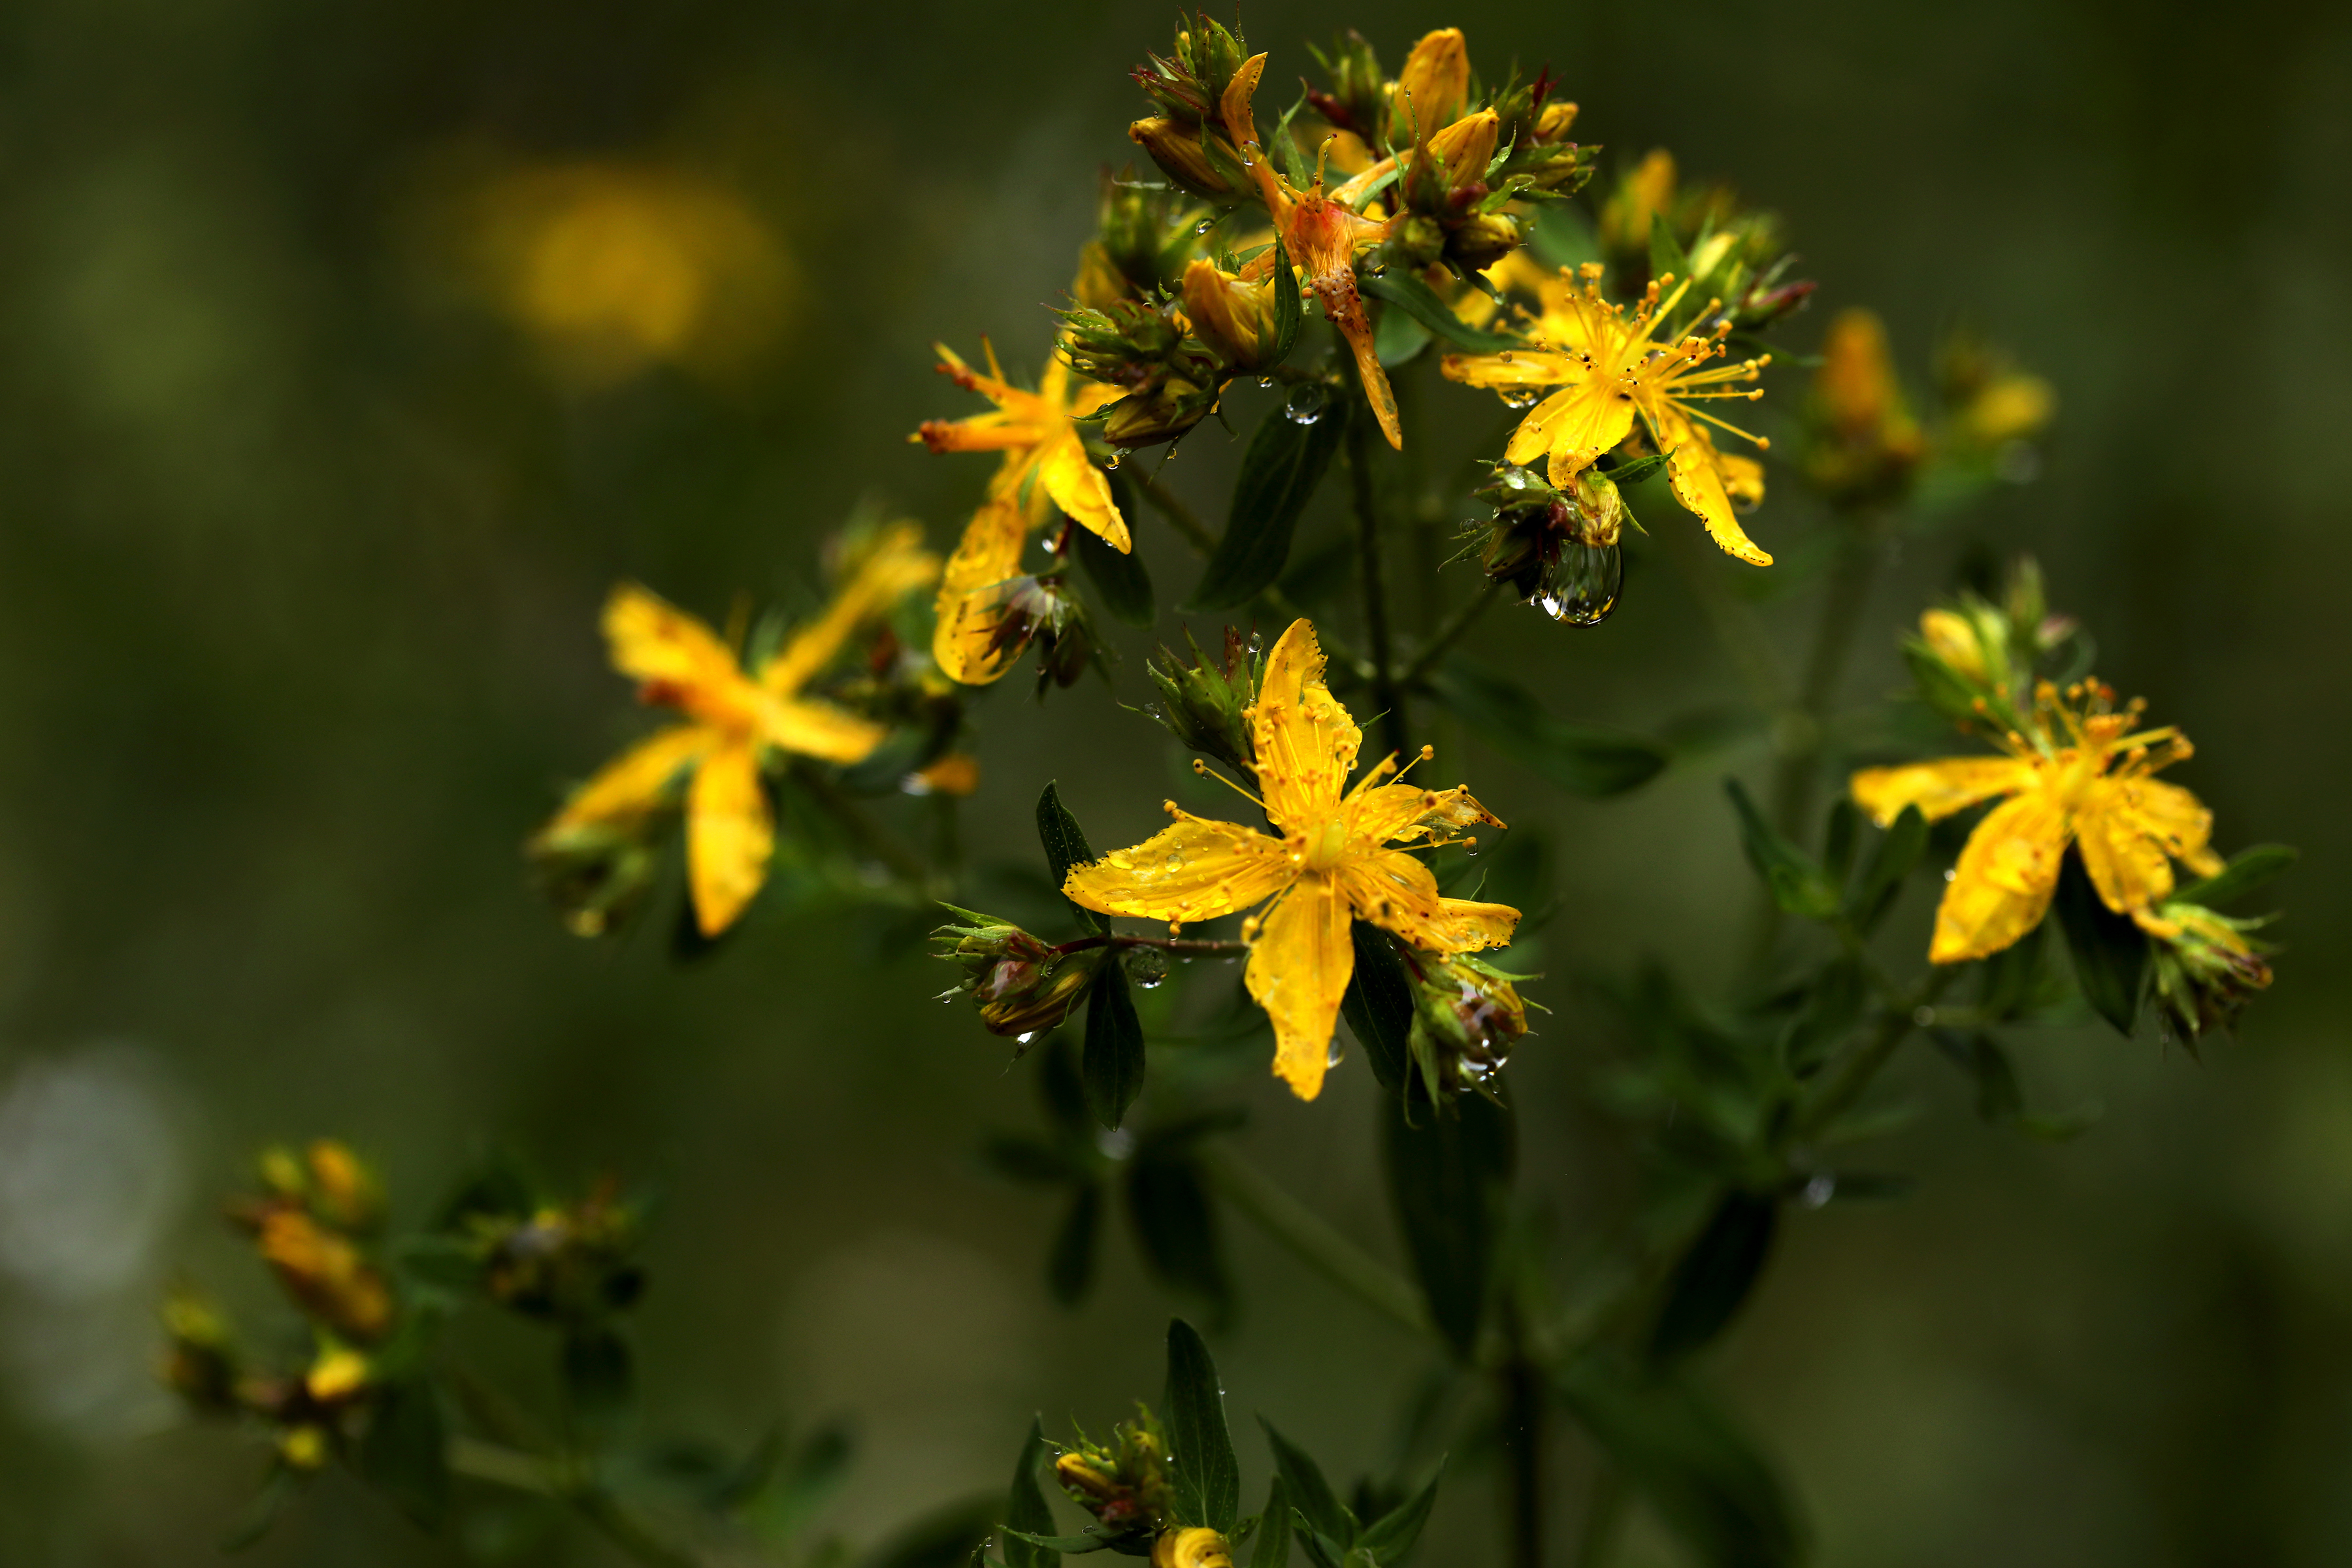 Flowering St. Johns Wort plant with yellow flowers